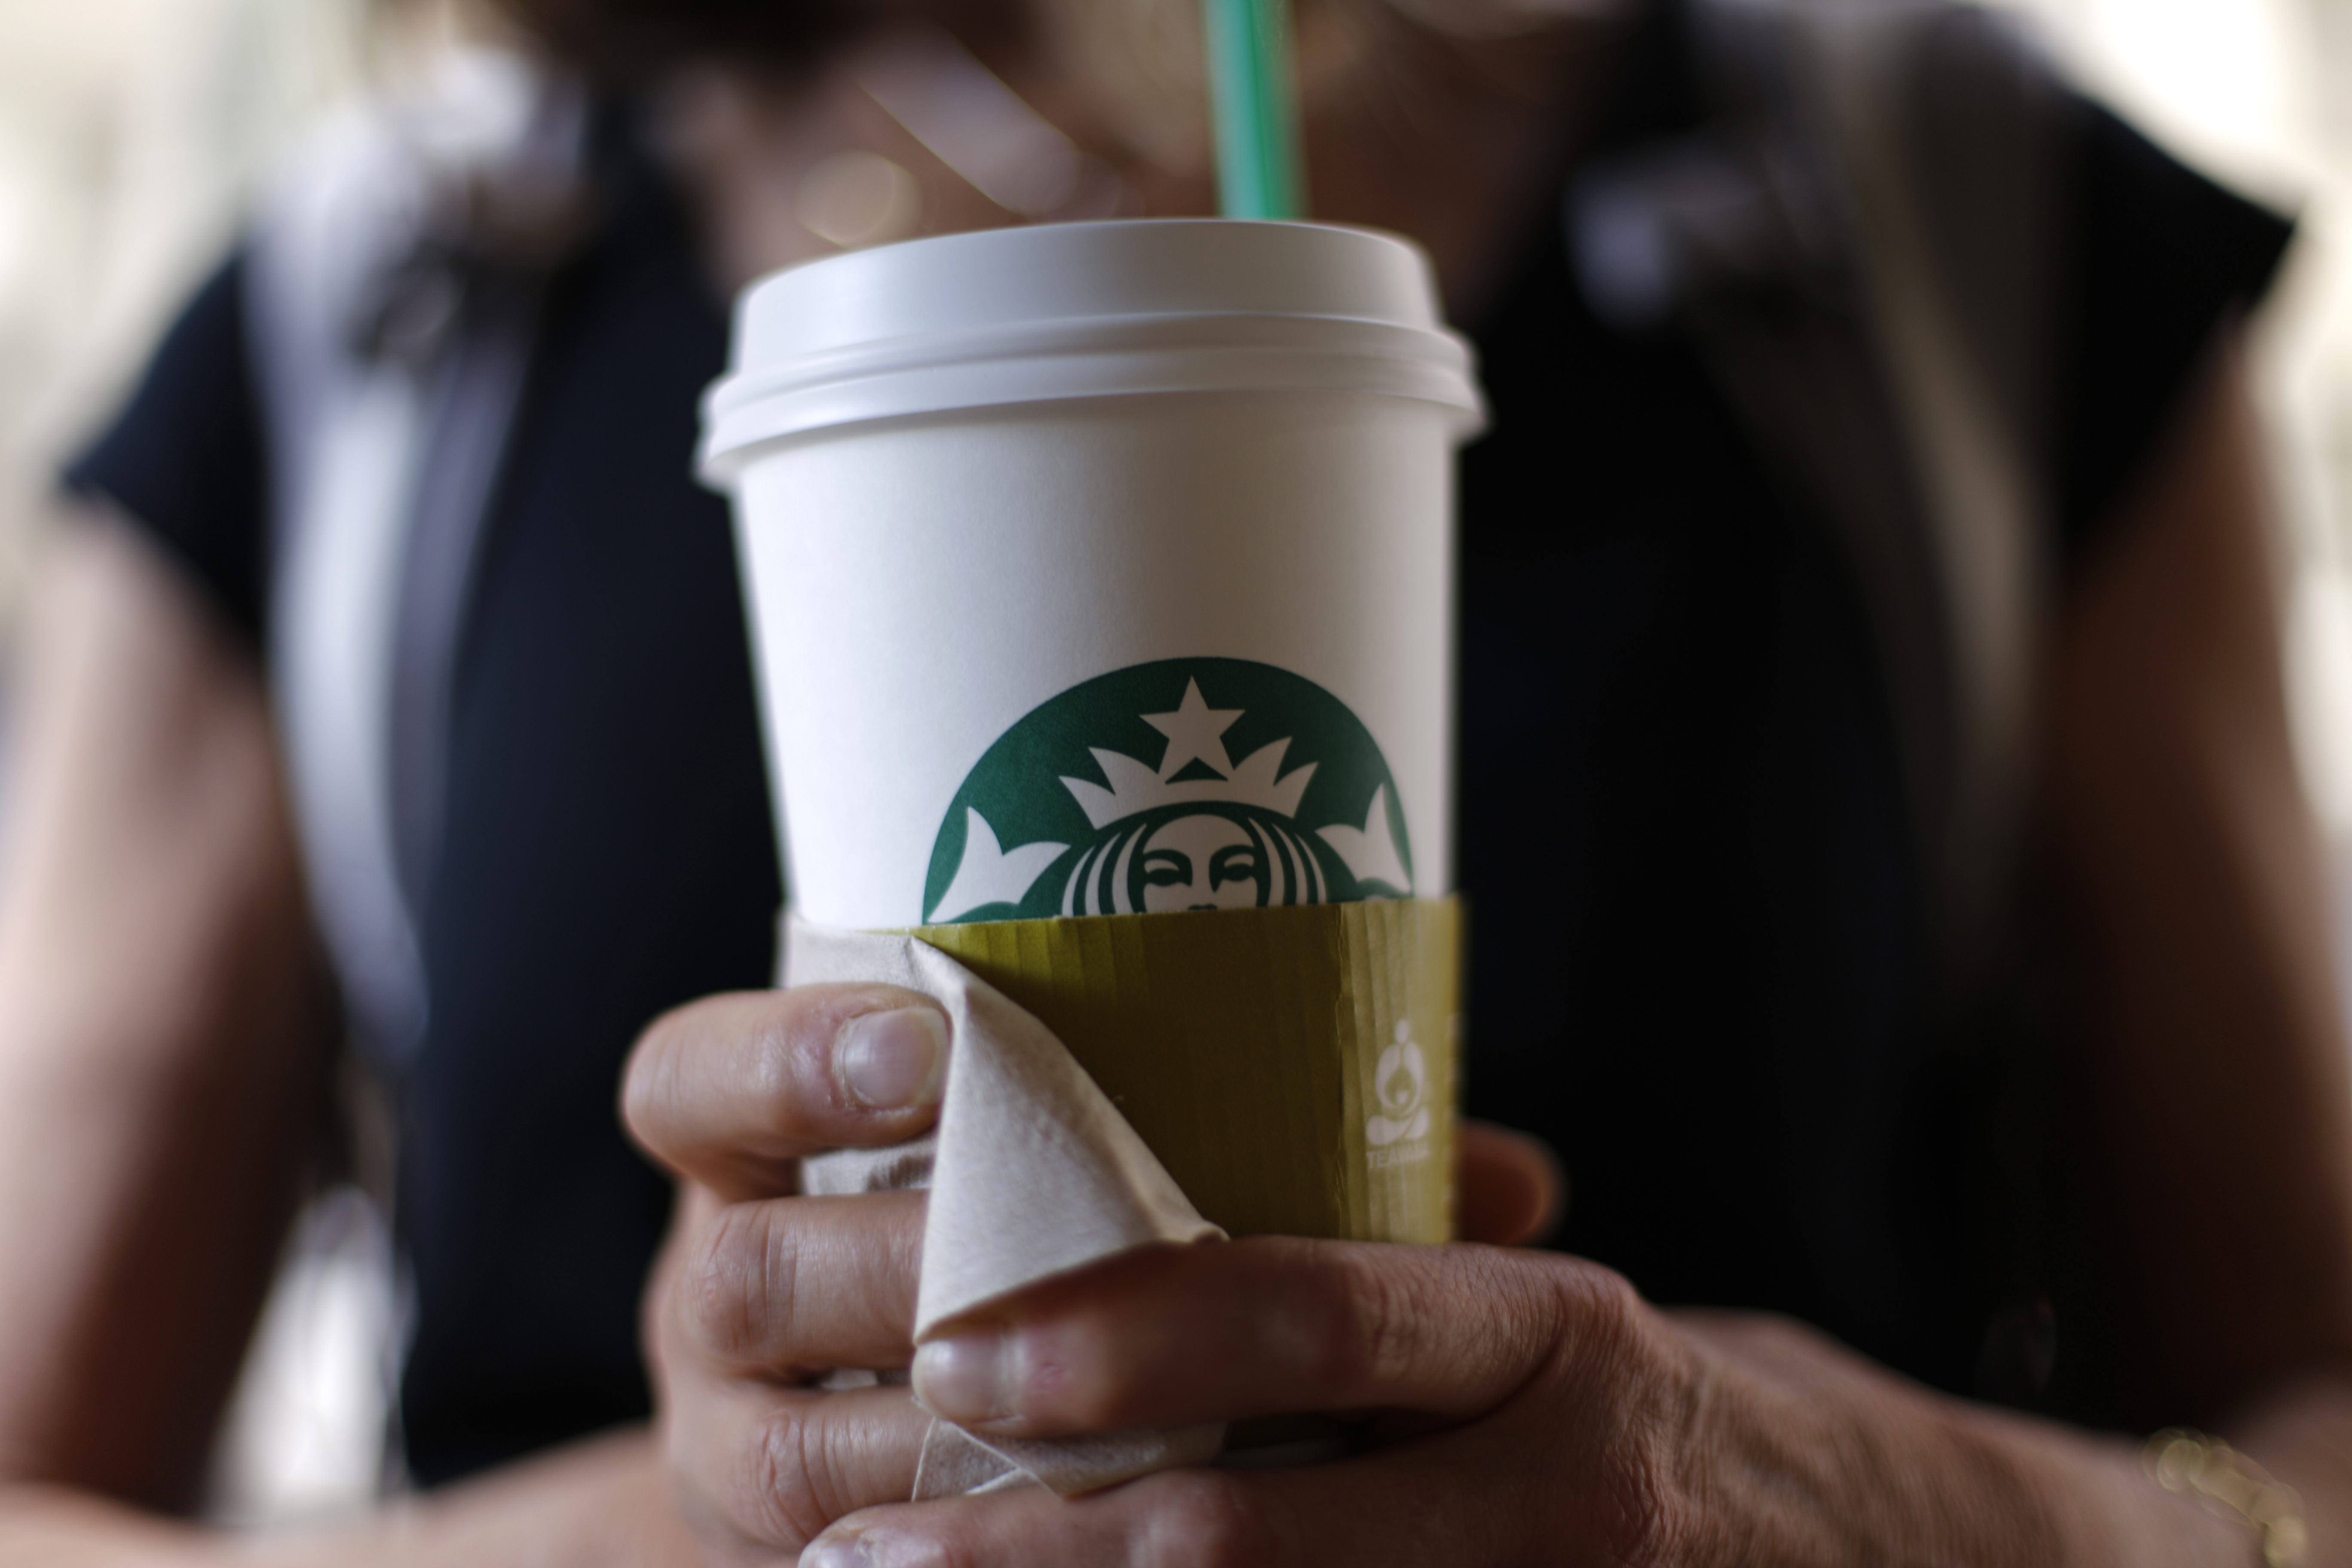 Be careful, those holiday coffee drinks could ruin your diet